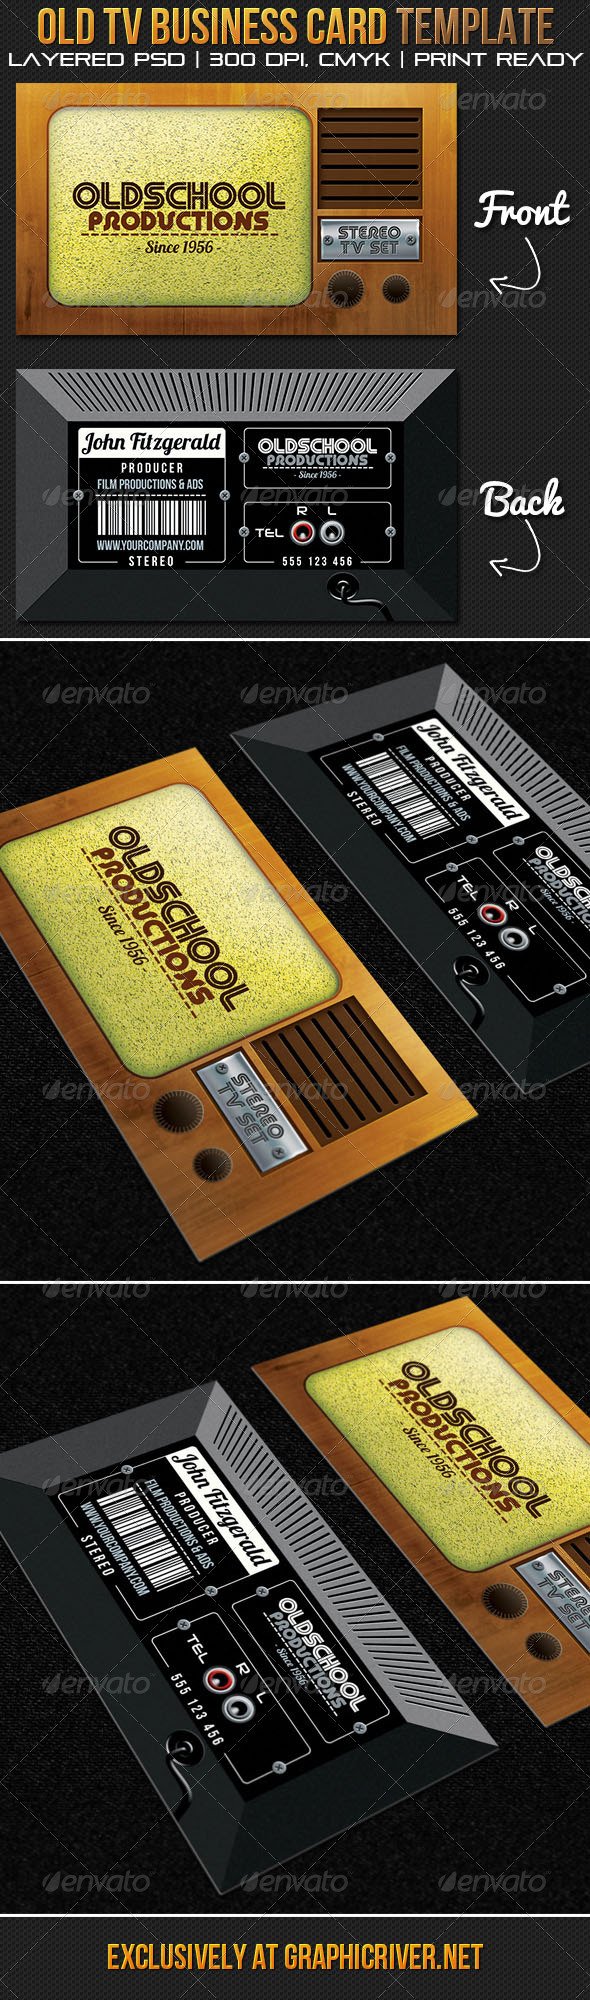 Oldschool Productions Business Card Template - Real Objects Business Cards